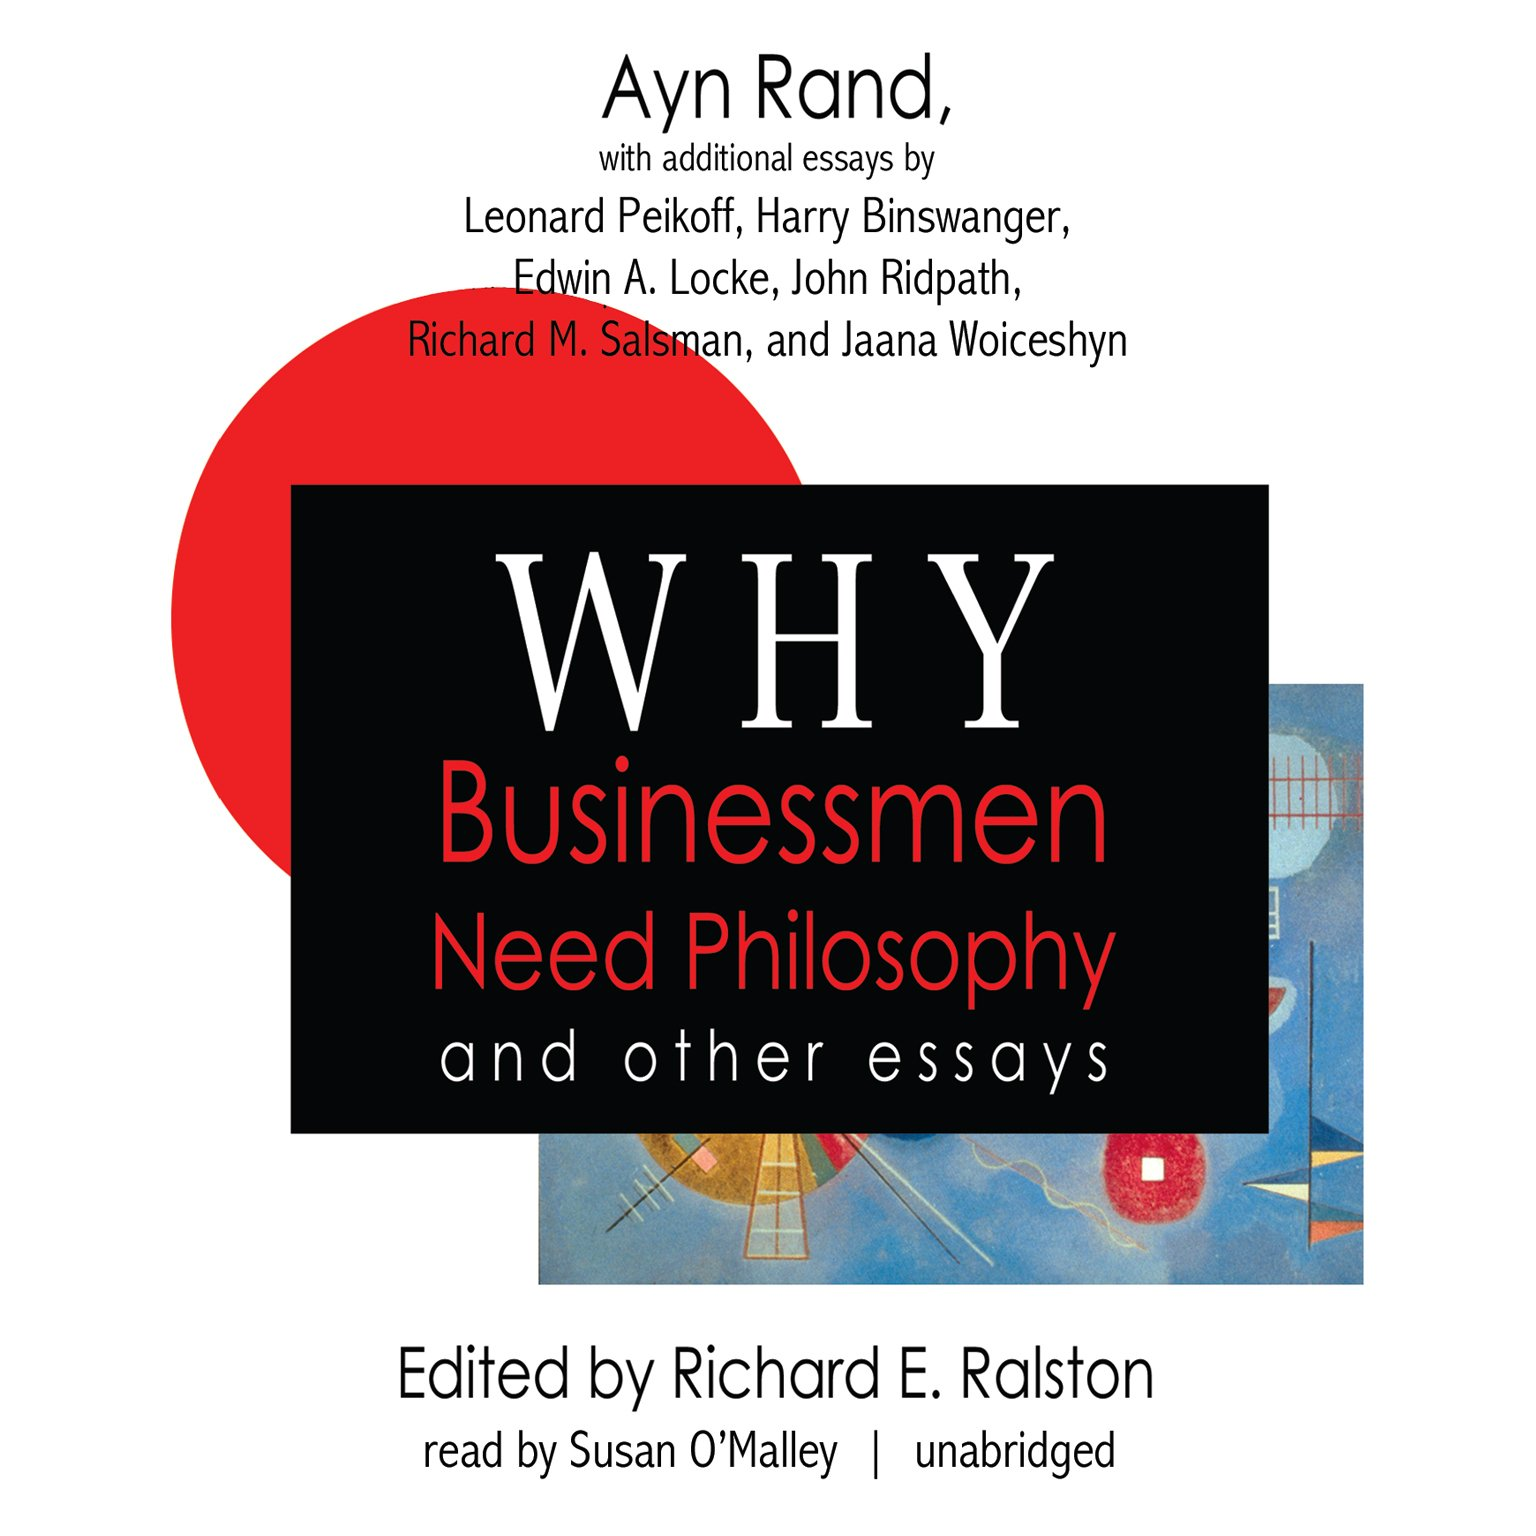 why businessmen need philosophy and other essays richard e why businessmen need philosophy and other essays richard e ralston ayn rand leonard peikoff harry binswanger edwin a locke john ridpath